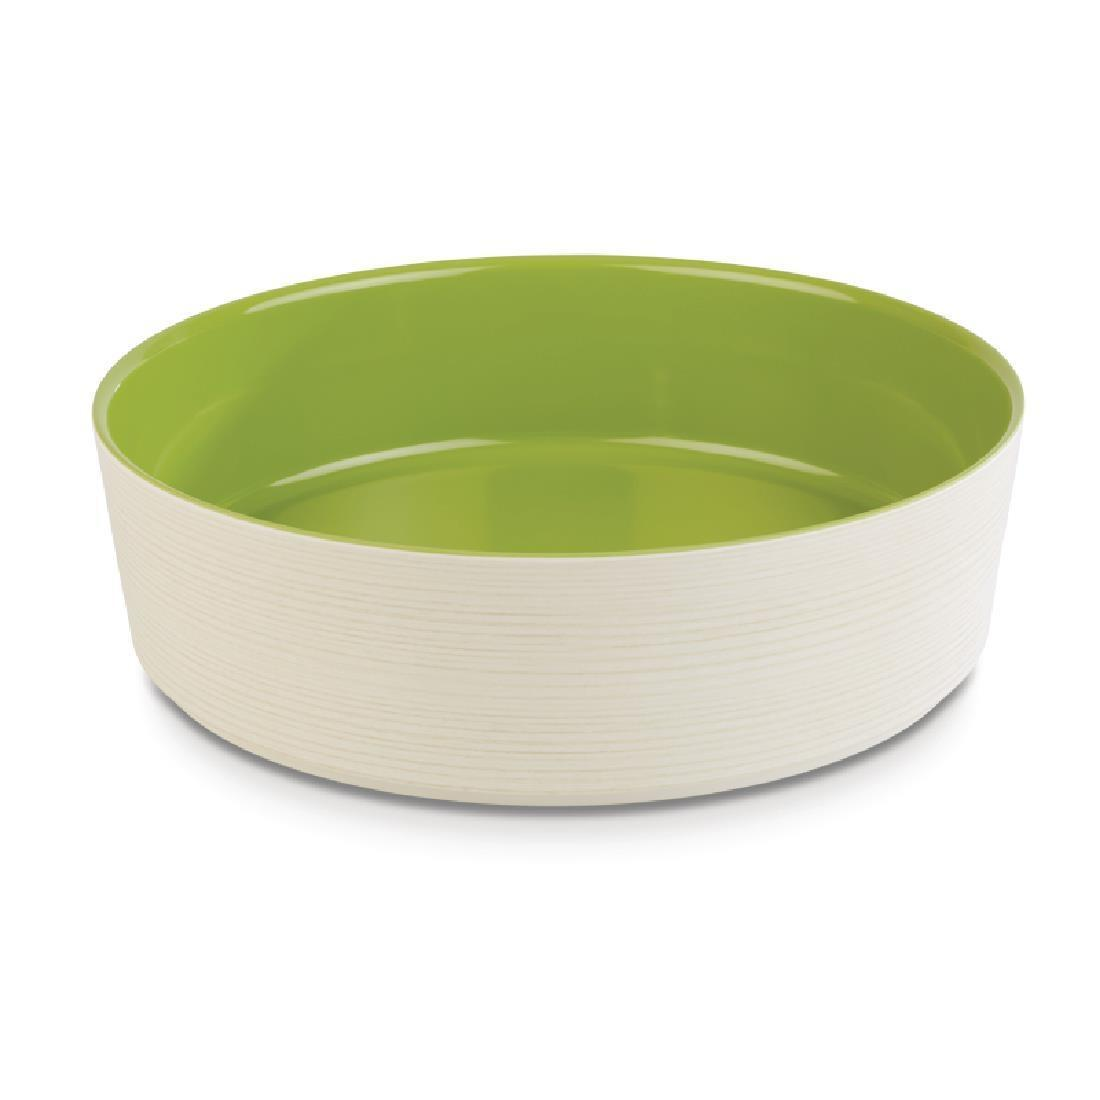 APS+ Melamine Round Bowl Maple and Green 4 Ltr - Each - DE568